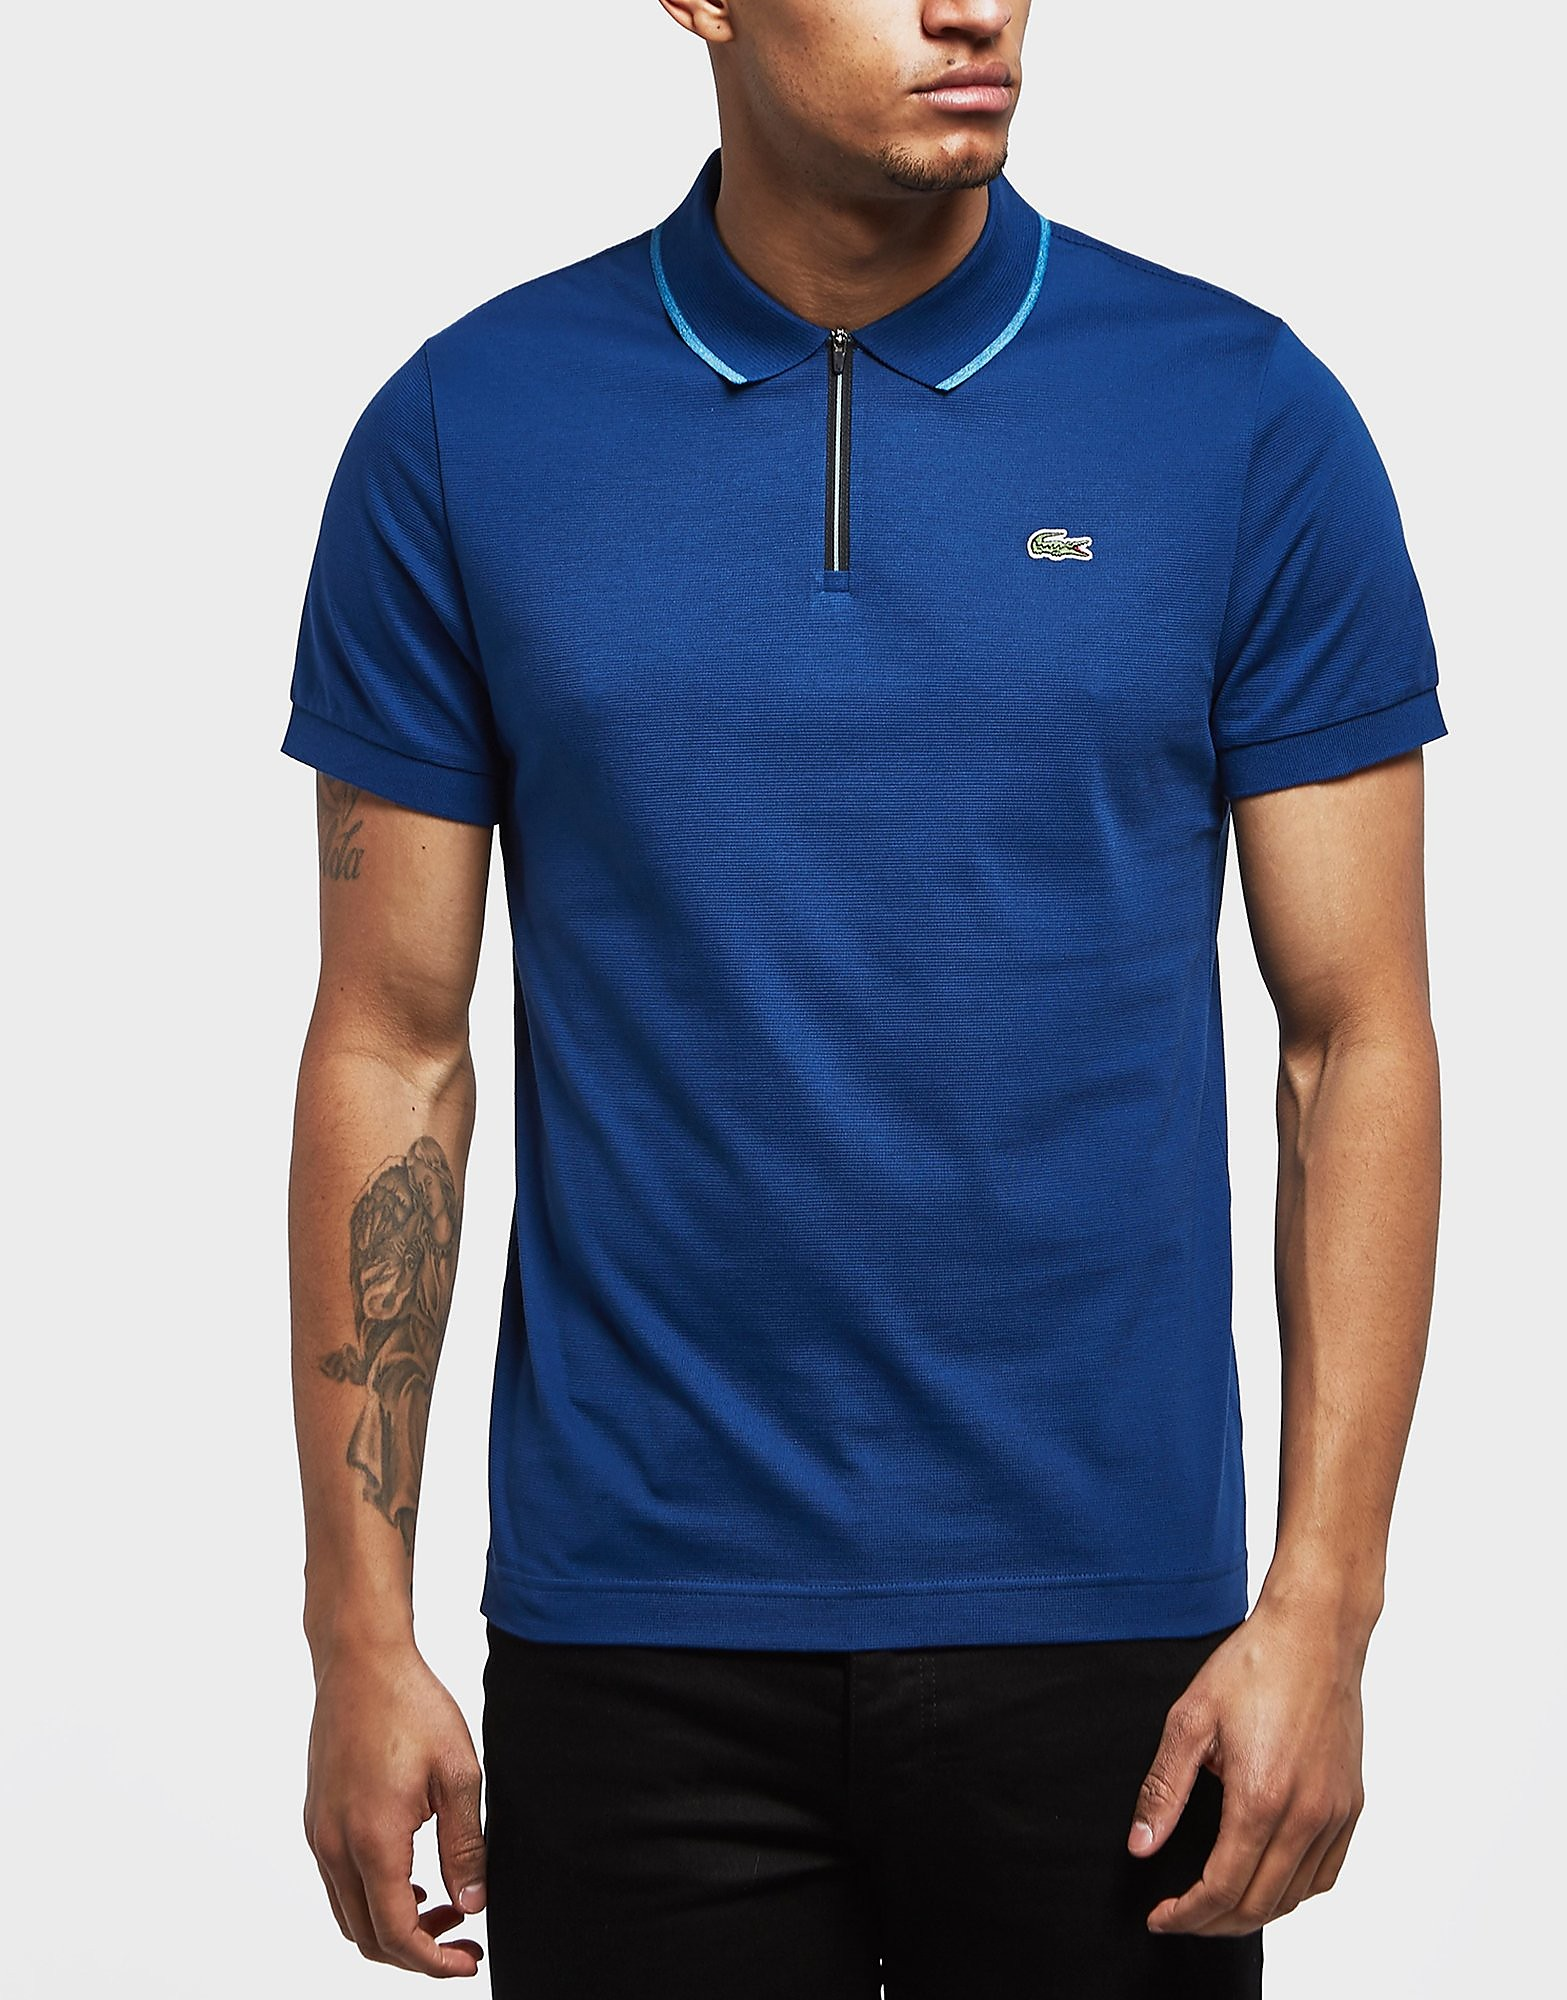 Lacoste Tipped Short Sleeve Zip Polo Shirt